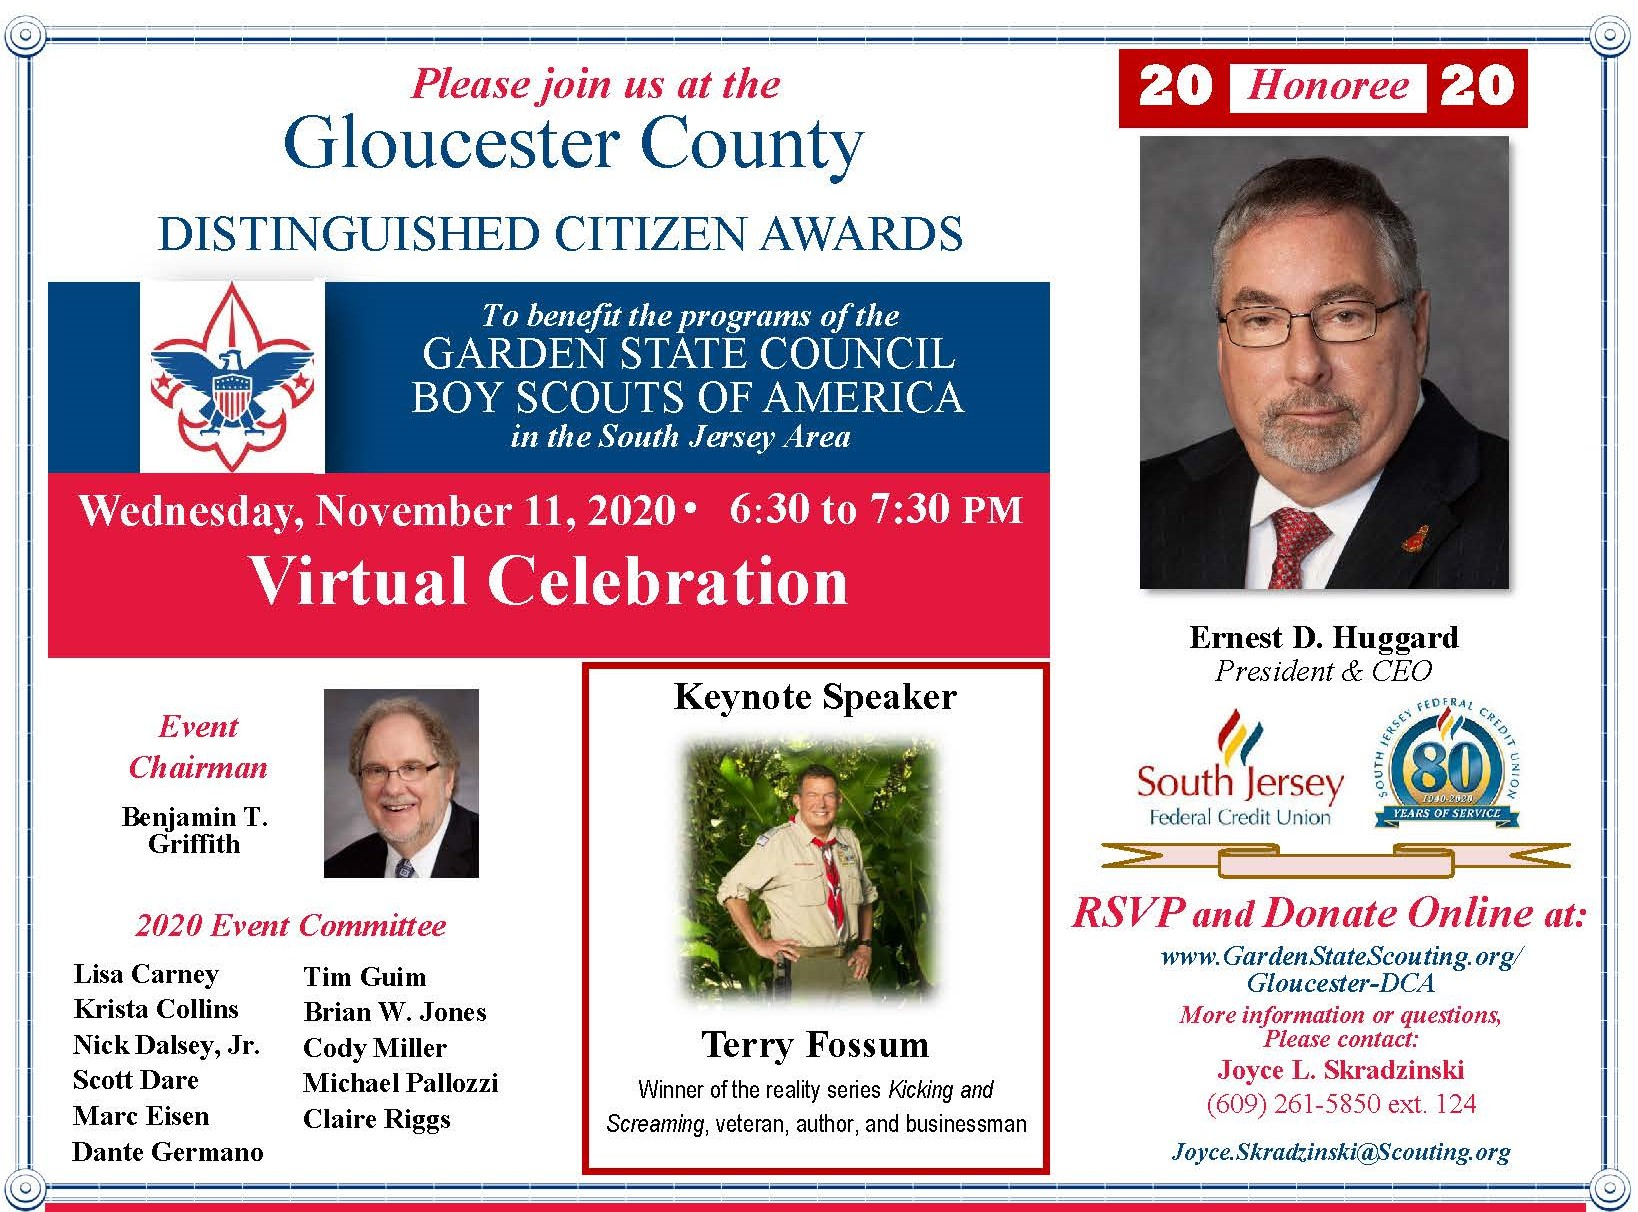 Garden State Council BSA's Gloucester County Distinguished Citizen of the Year for 2020 is Ernest D. Huggard, who will be celebrated on 11/11 at a virtual celebration.